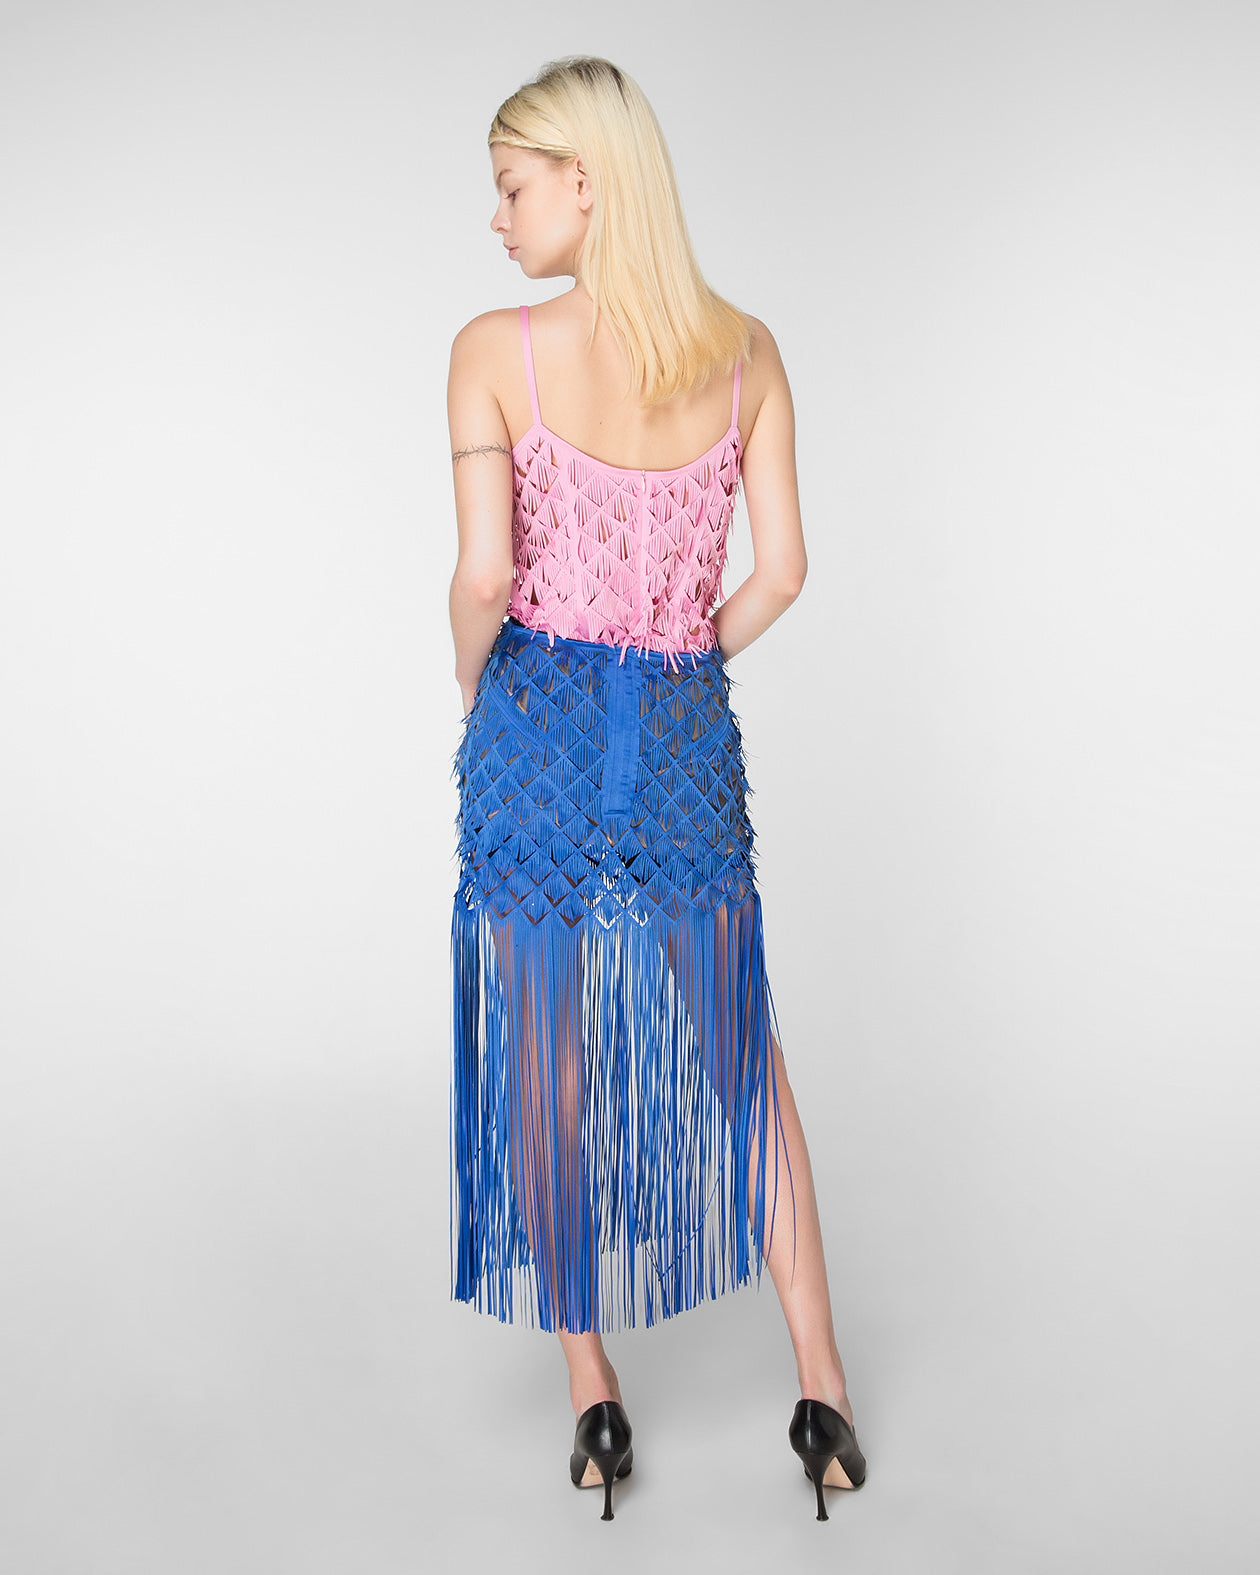 Laser-cut midi skirt with fringe hem